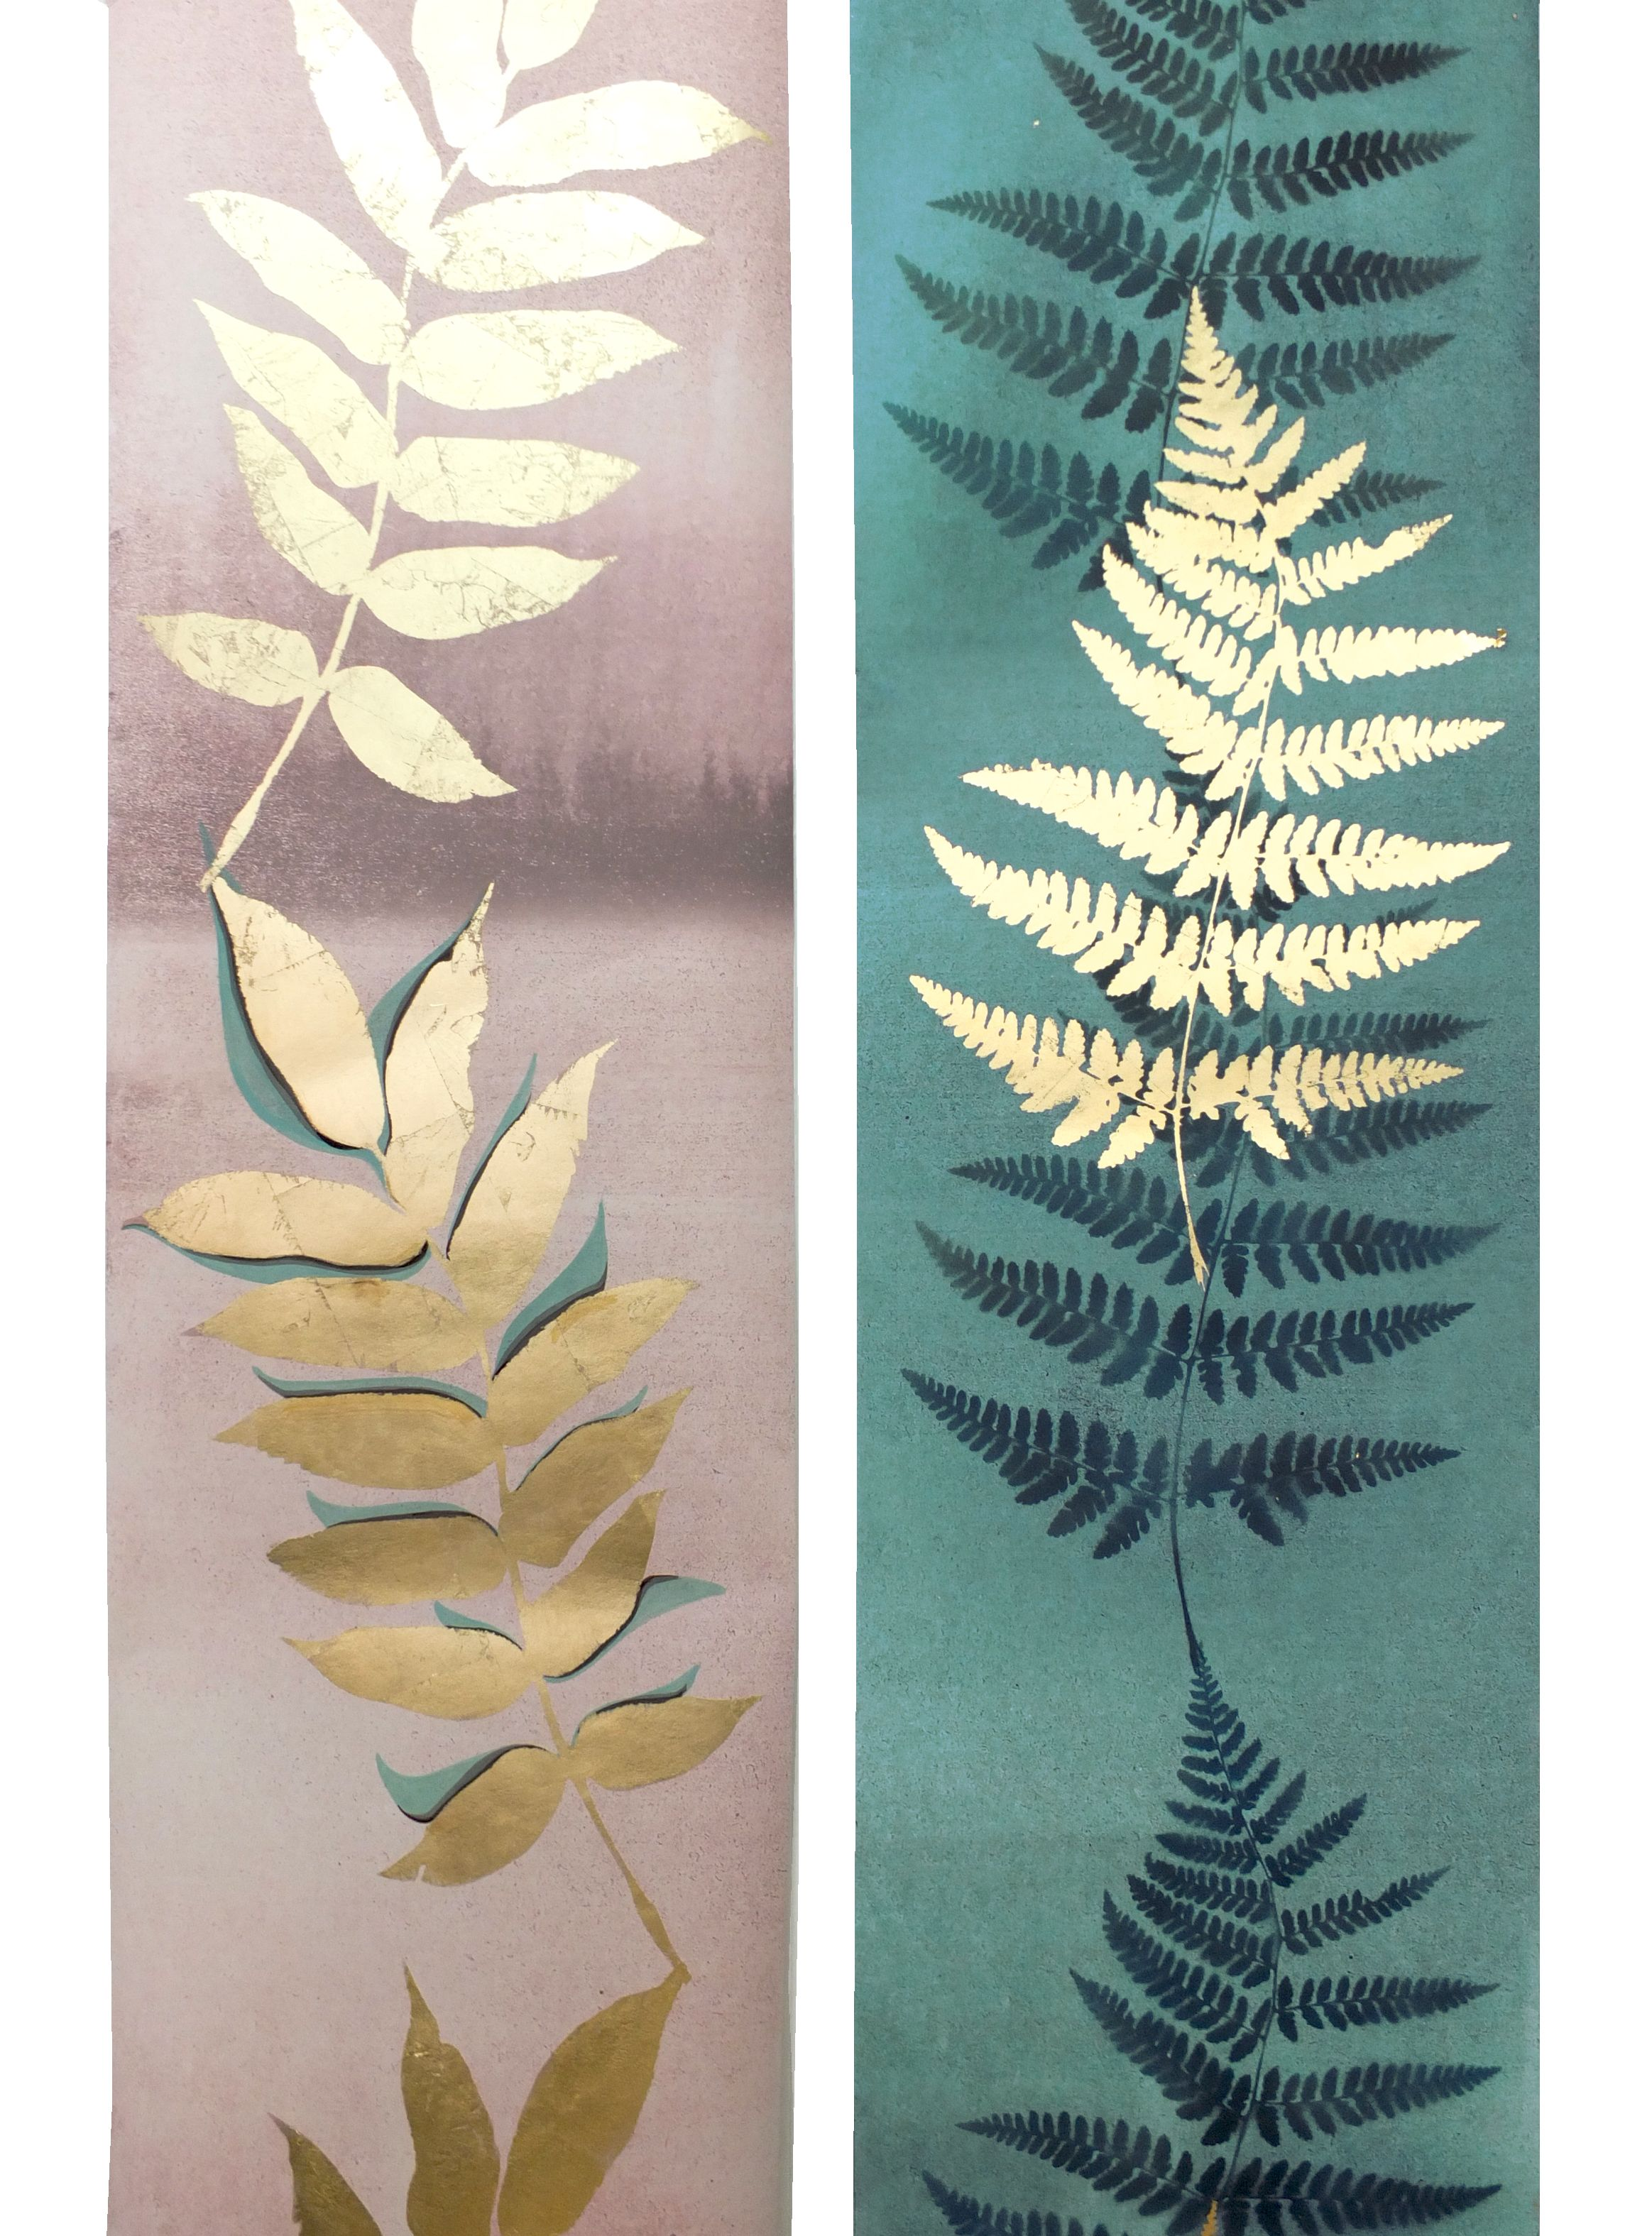 Stunning Metallic Gold Wallpapers By Louise Body Gold Leaves And Ferns Adorn These Wallpapers In Beautiful Fern Wallpaper Green Leaf Wallpaper Leaf Wallpaper